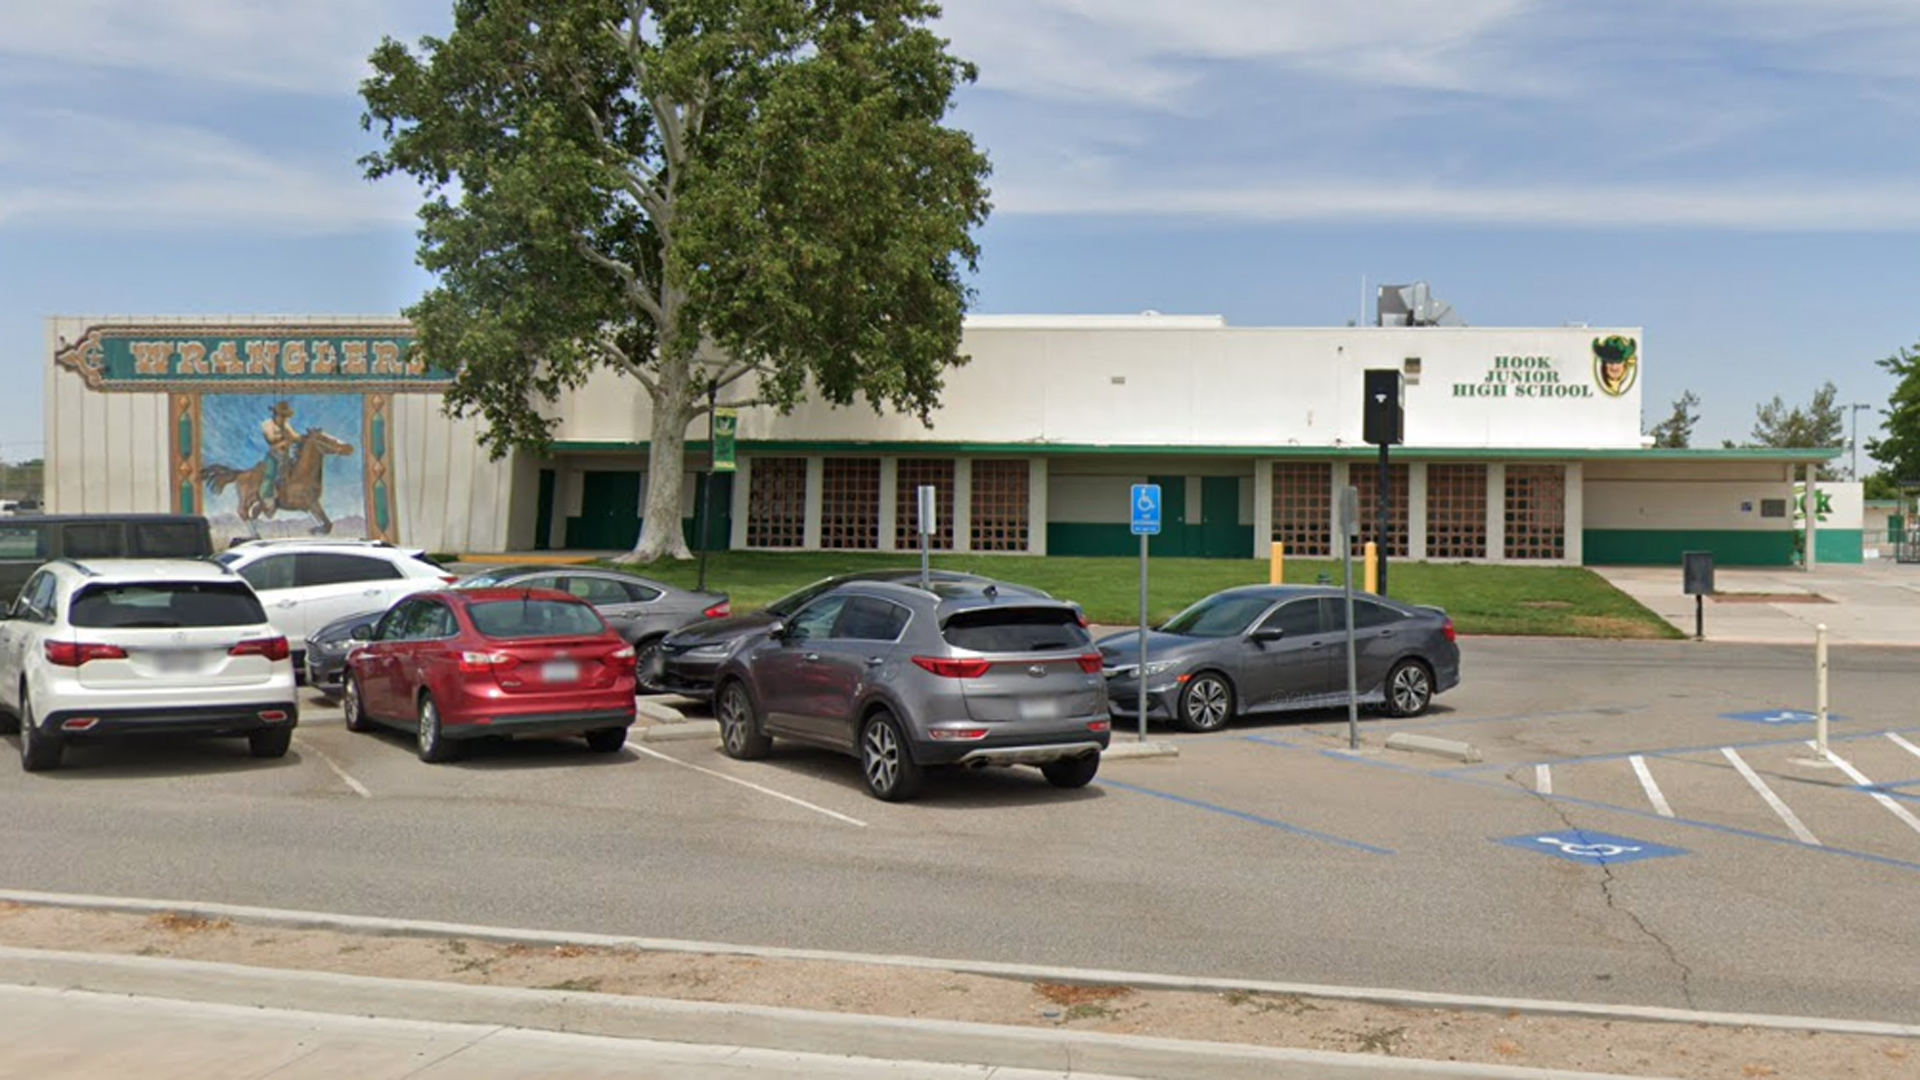 A Google Maps image of Hook Junior High School in Victorville.